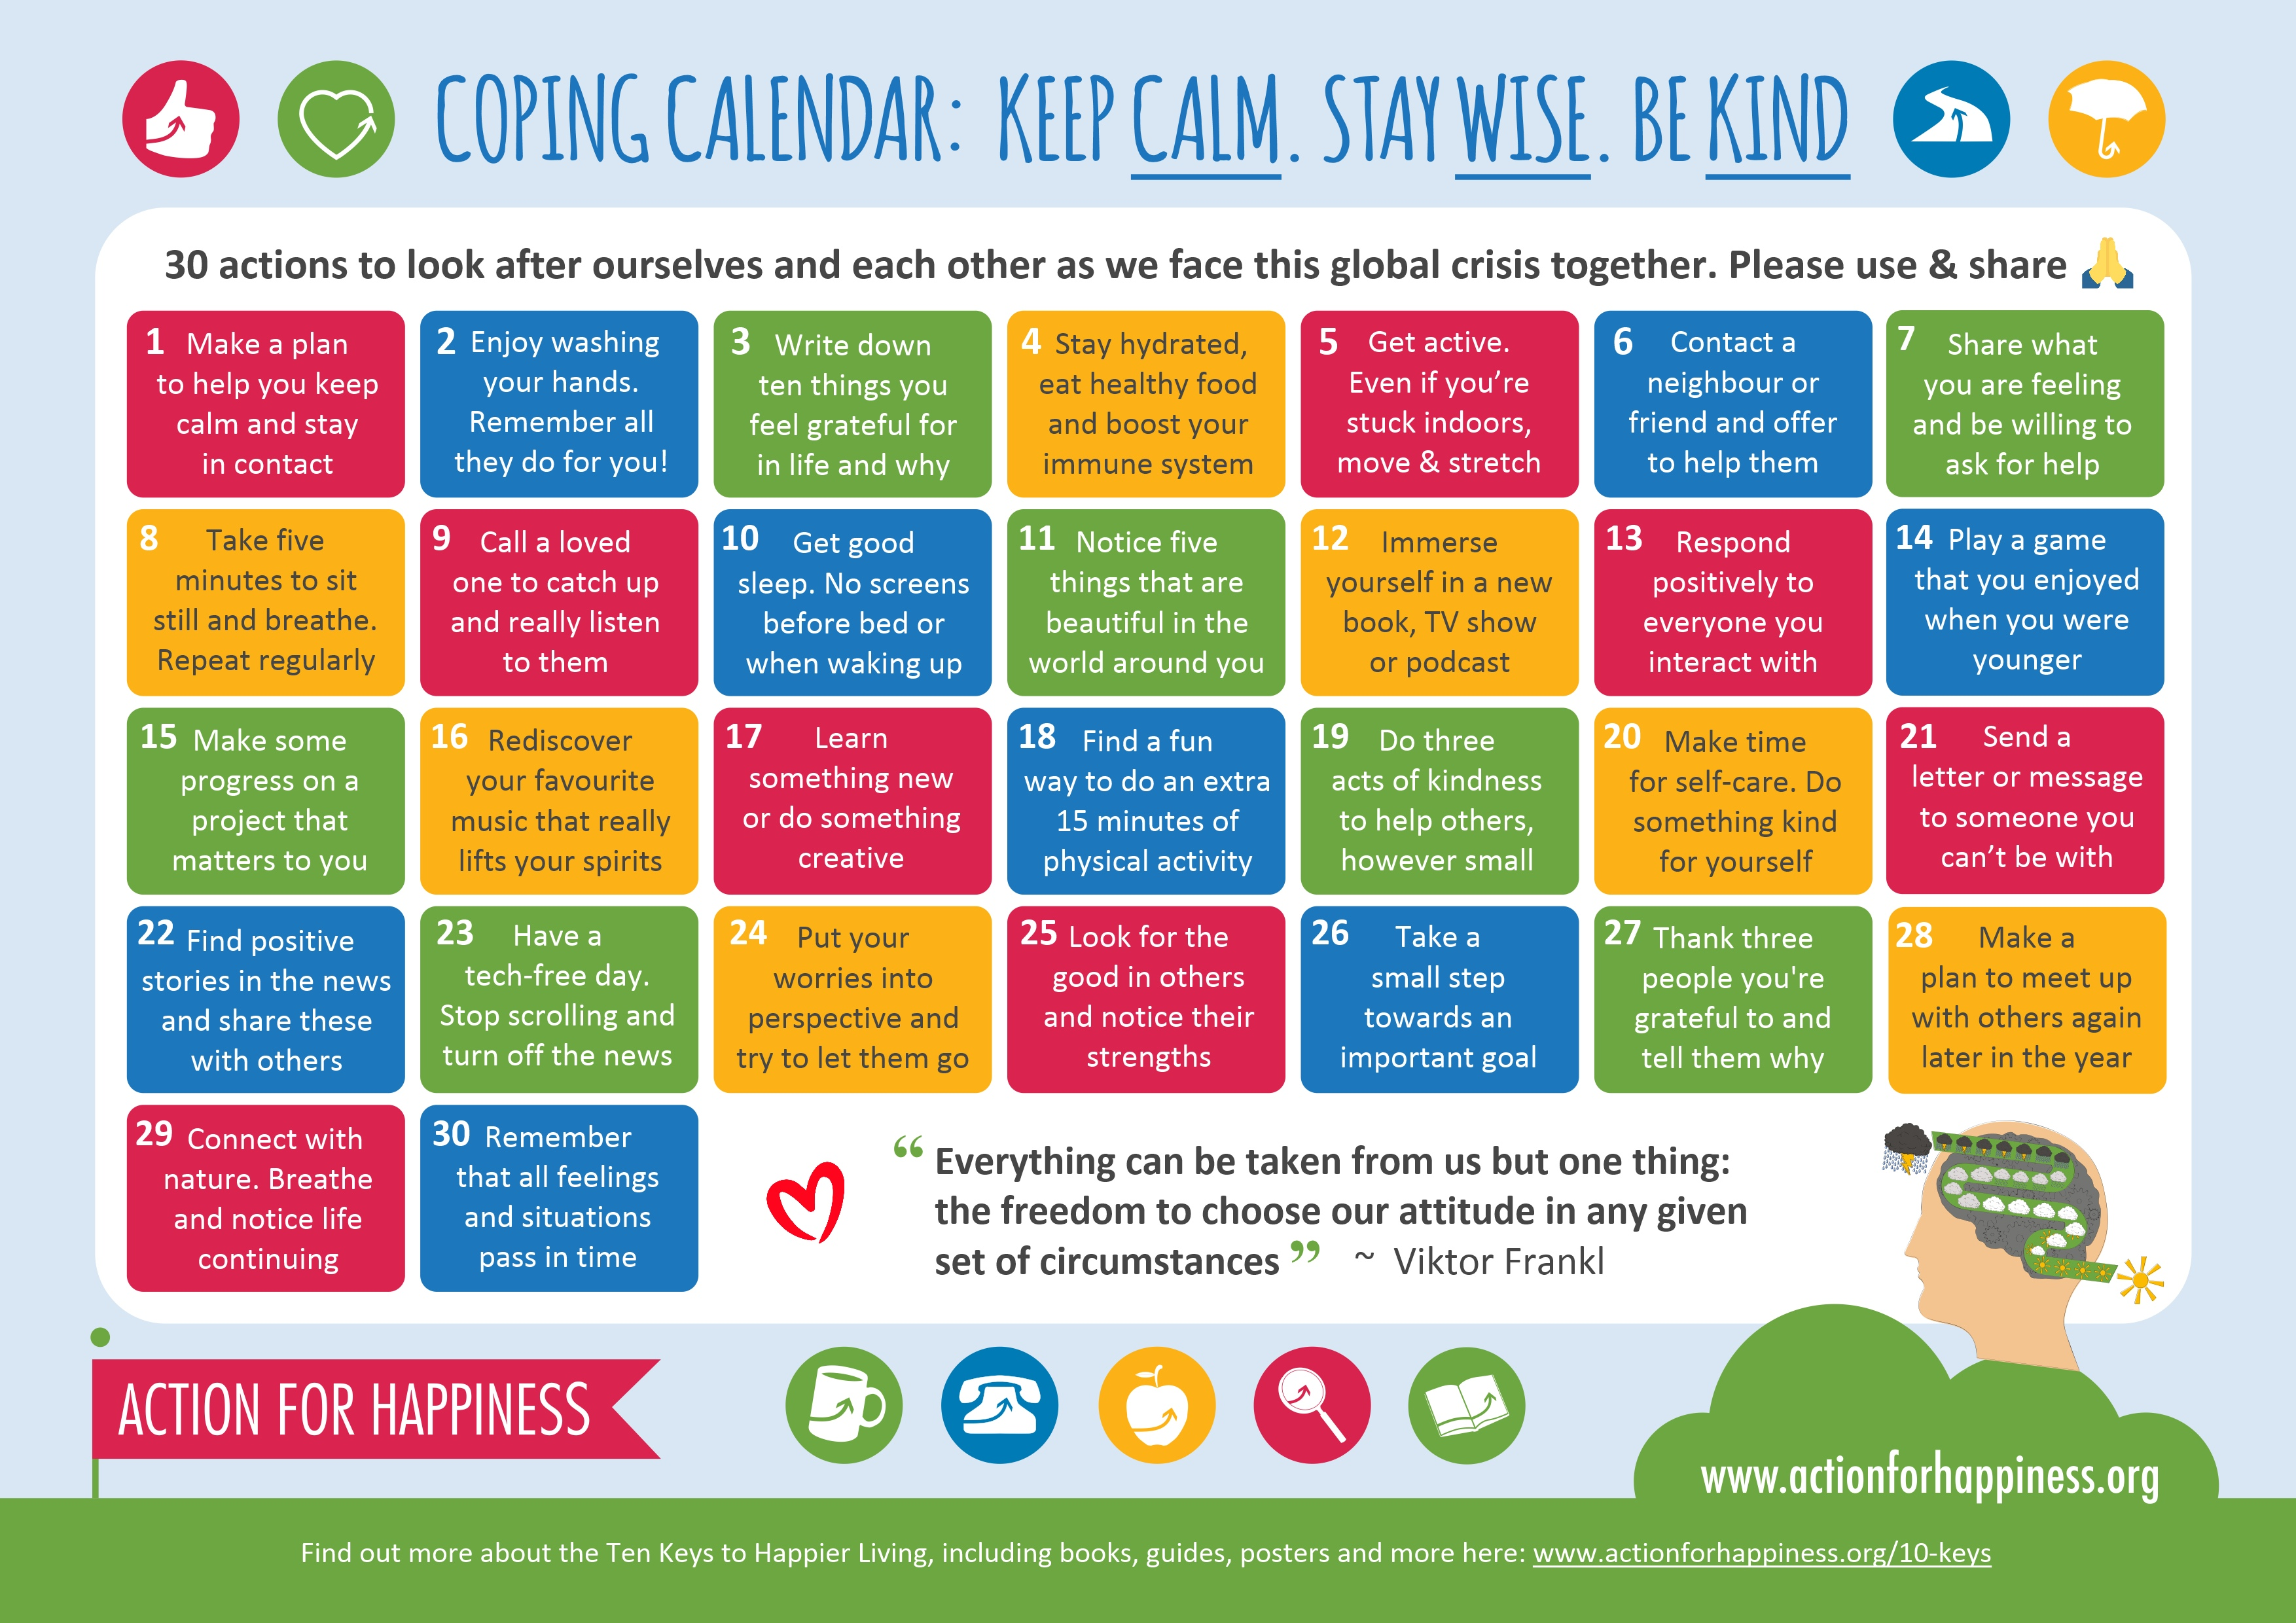 Image shows a Coping Calendar with 30 ideas on self care, by Action for Happiness.